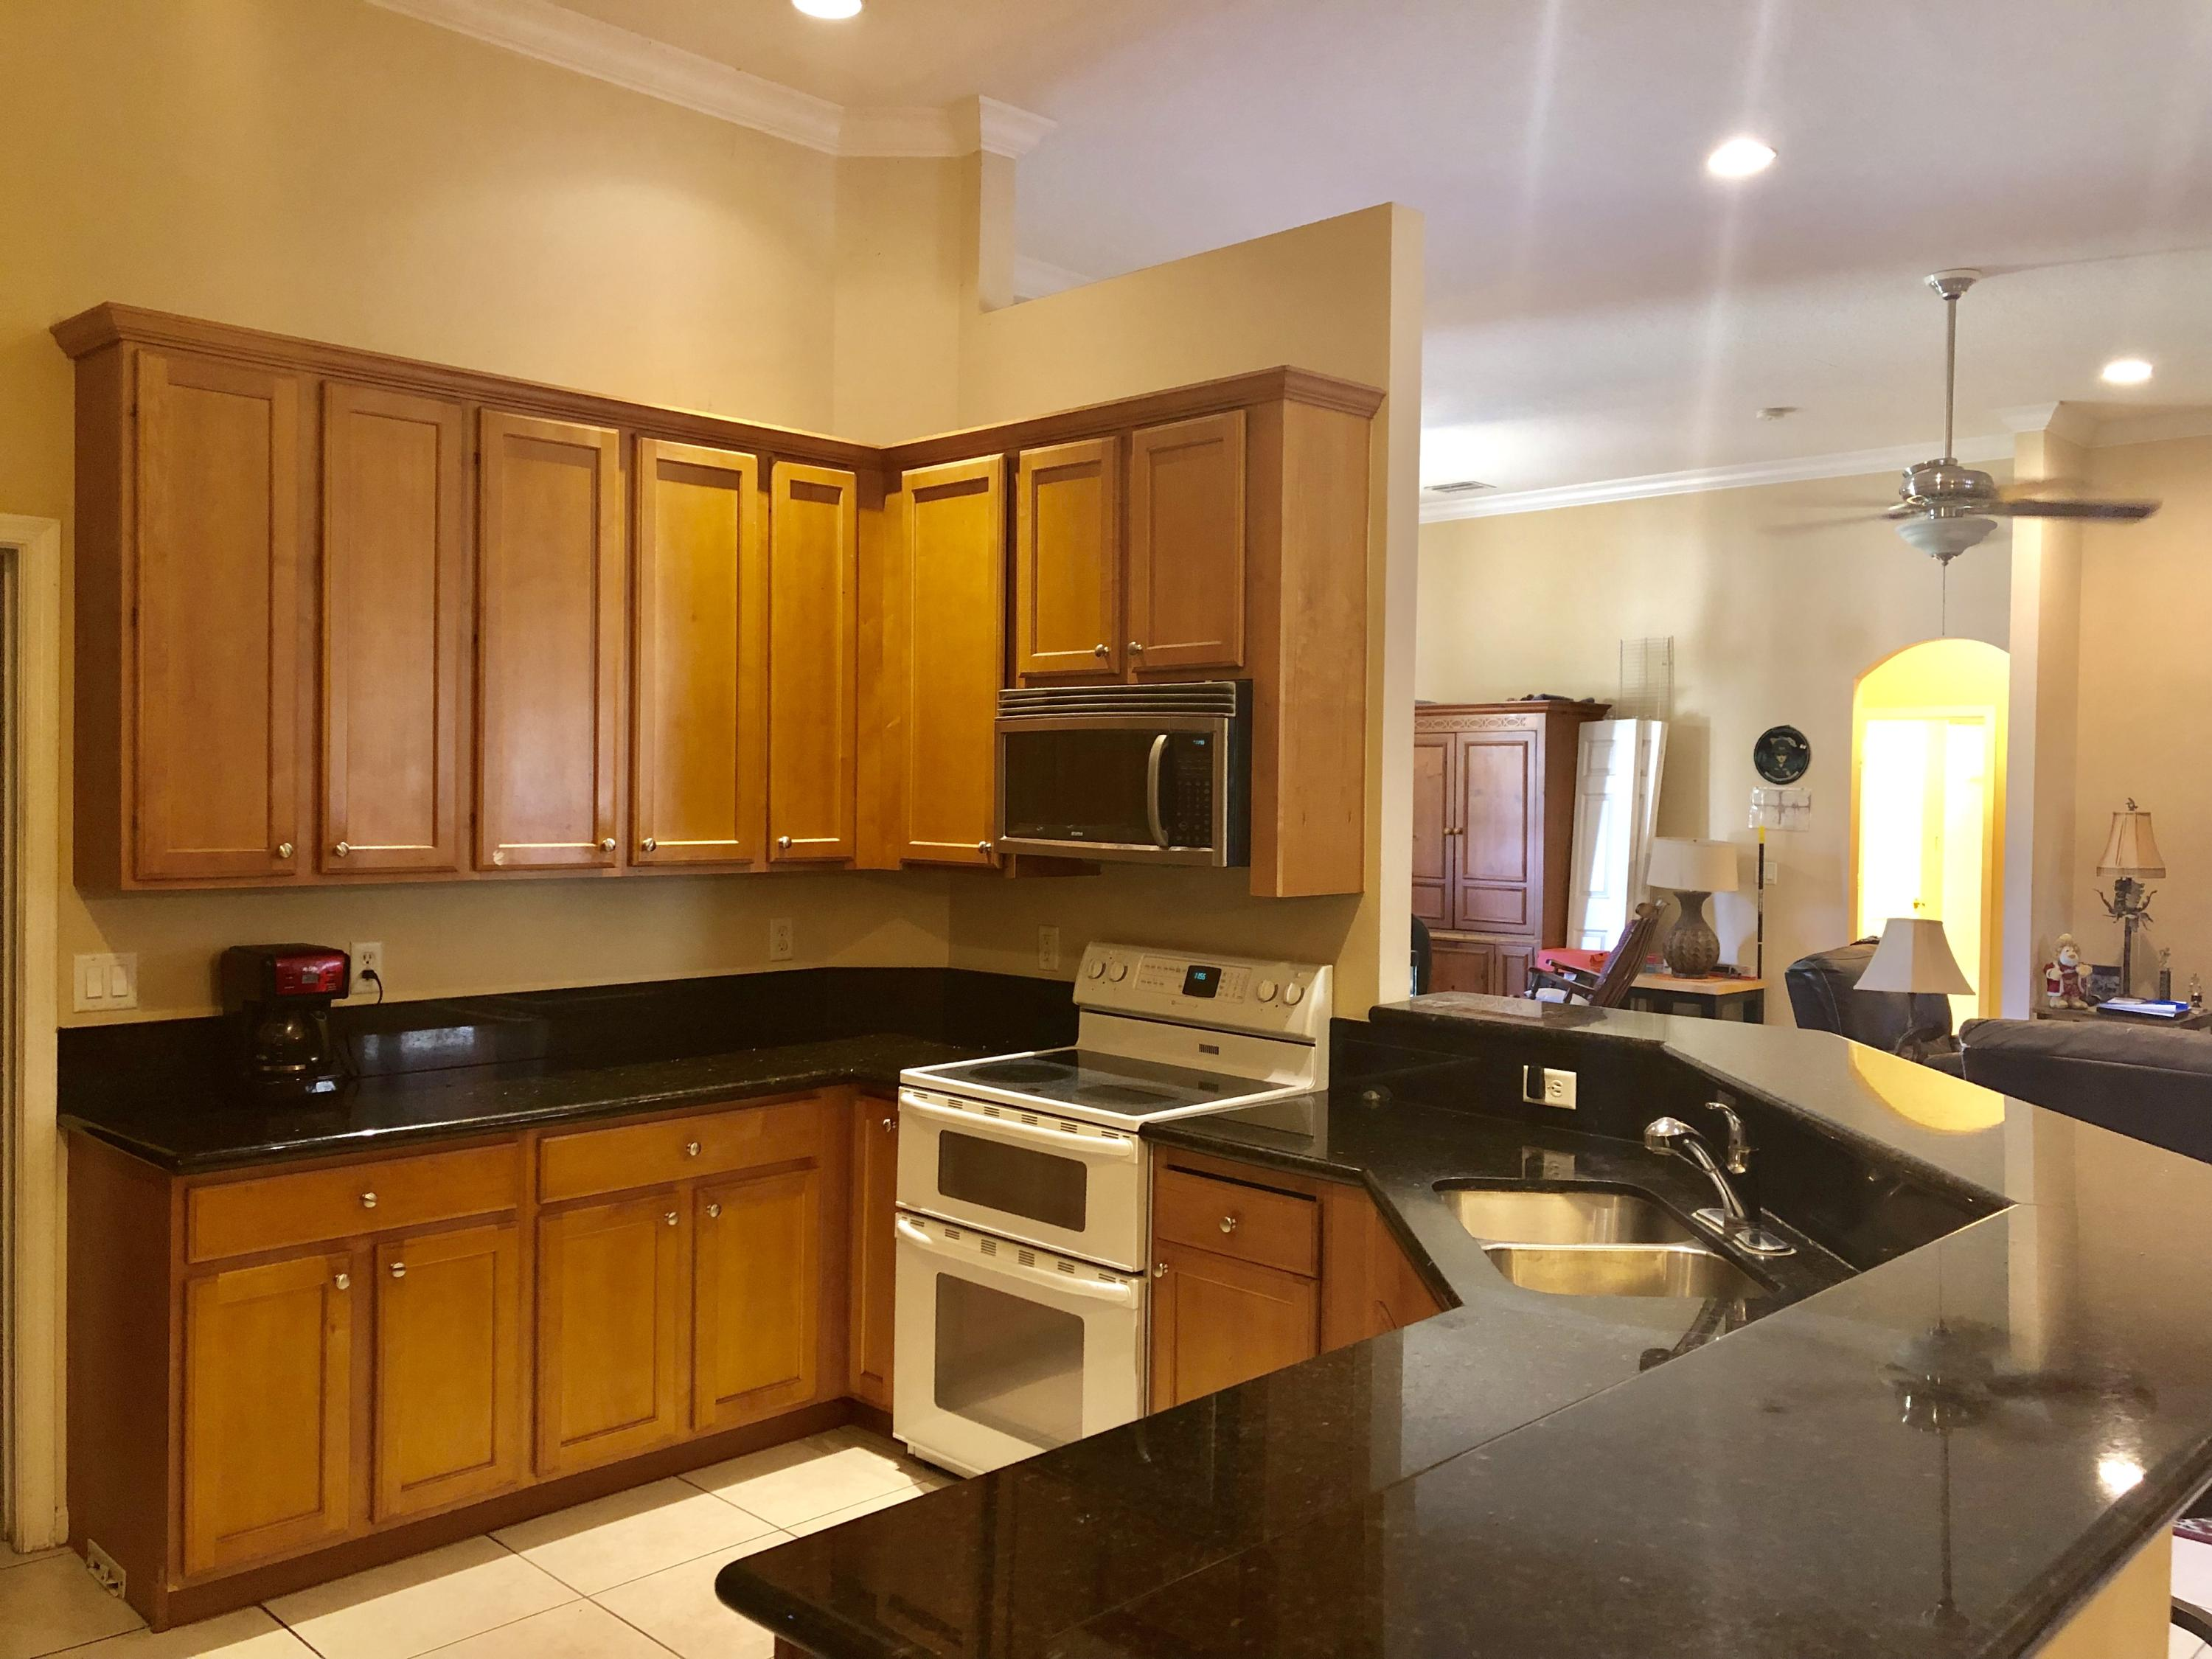 16136 E Aquaduct Drive, Loxahatchee in Palm Beach County, FL 33470 Home for Sale